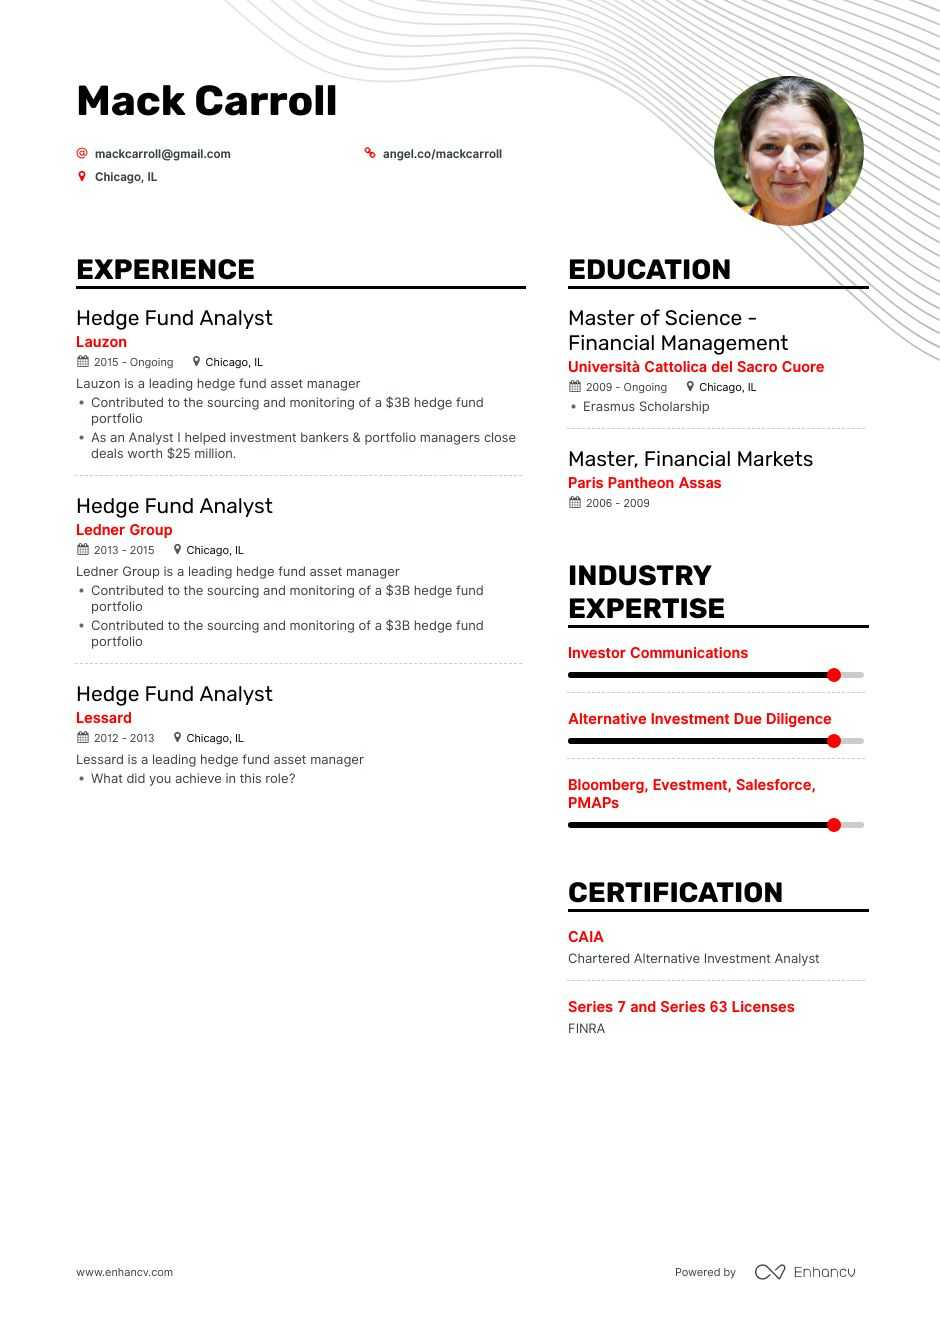 hedge fund analyst resume example for enhancv investment makeup artist sample oncology Resume Investment Analyst Resume